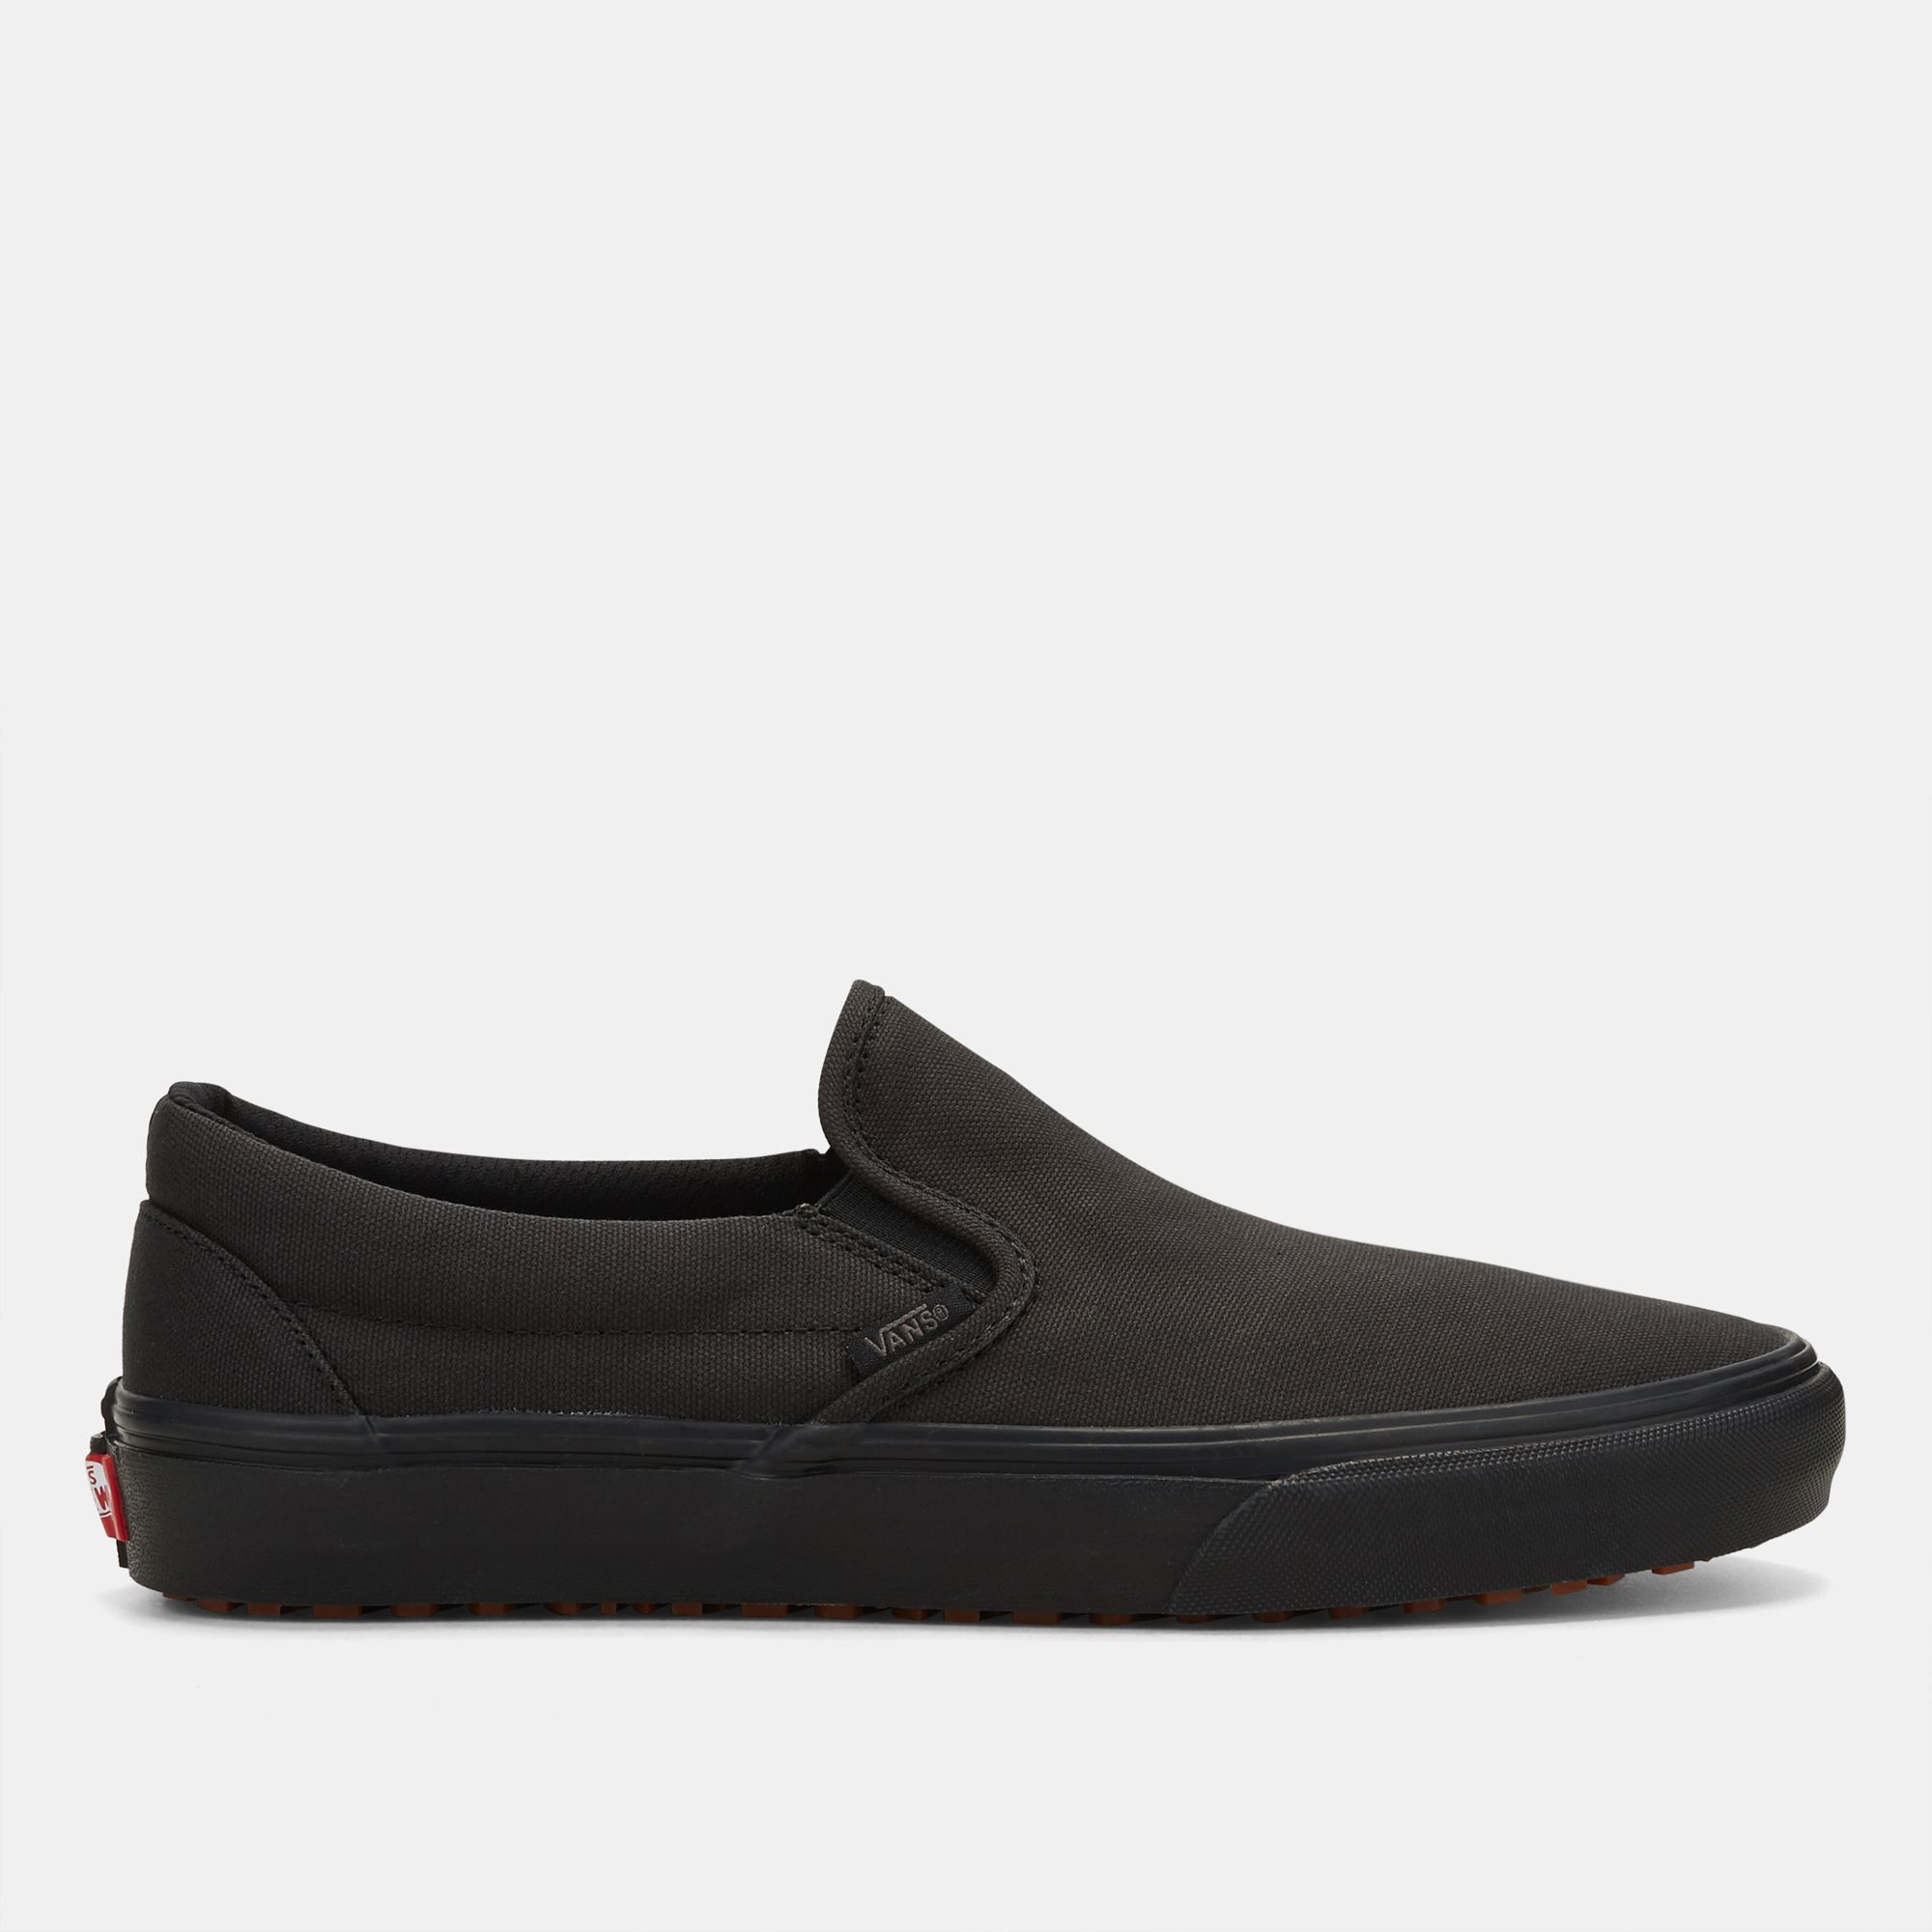 0f76ba6d5c2 Vans Made For The Makers Classic Slip-On UC Shoe